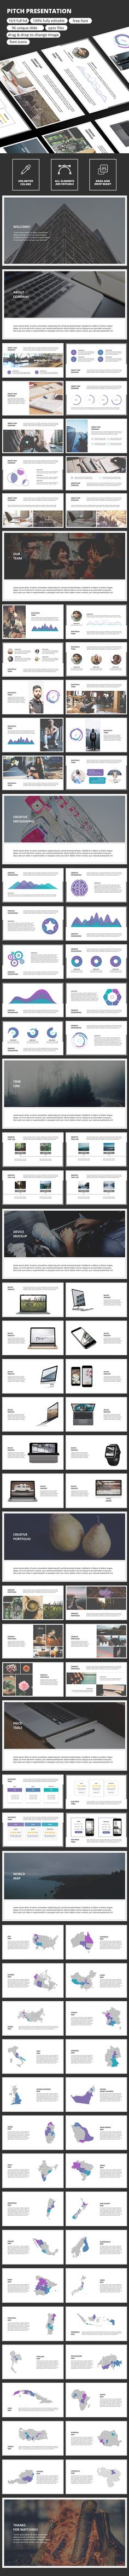 Pitch - PowerPoint Presentation Template